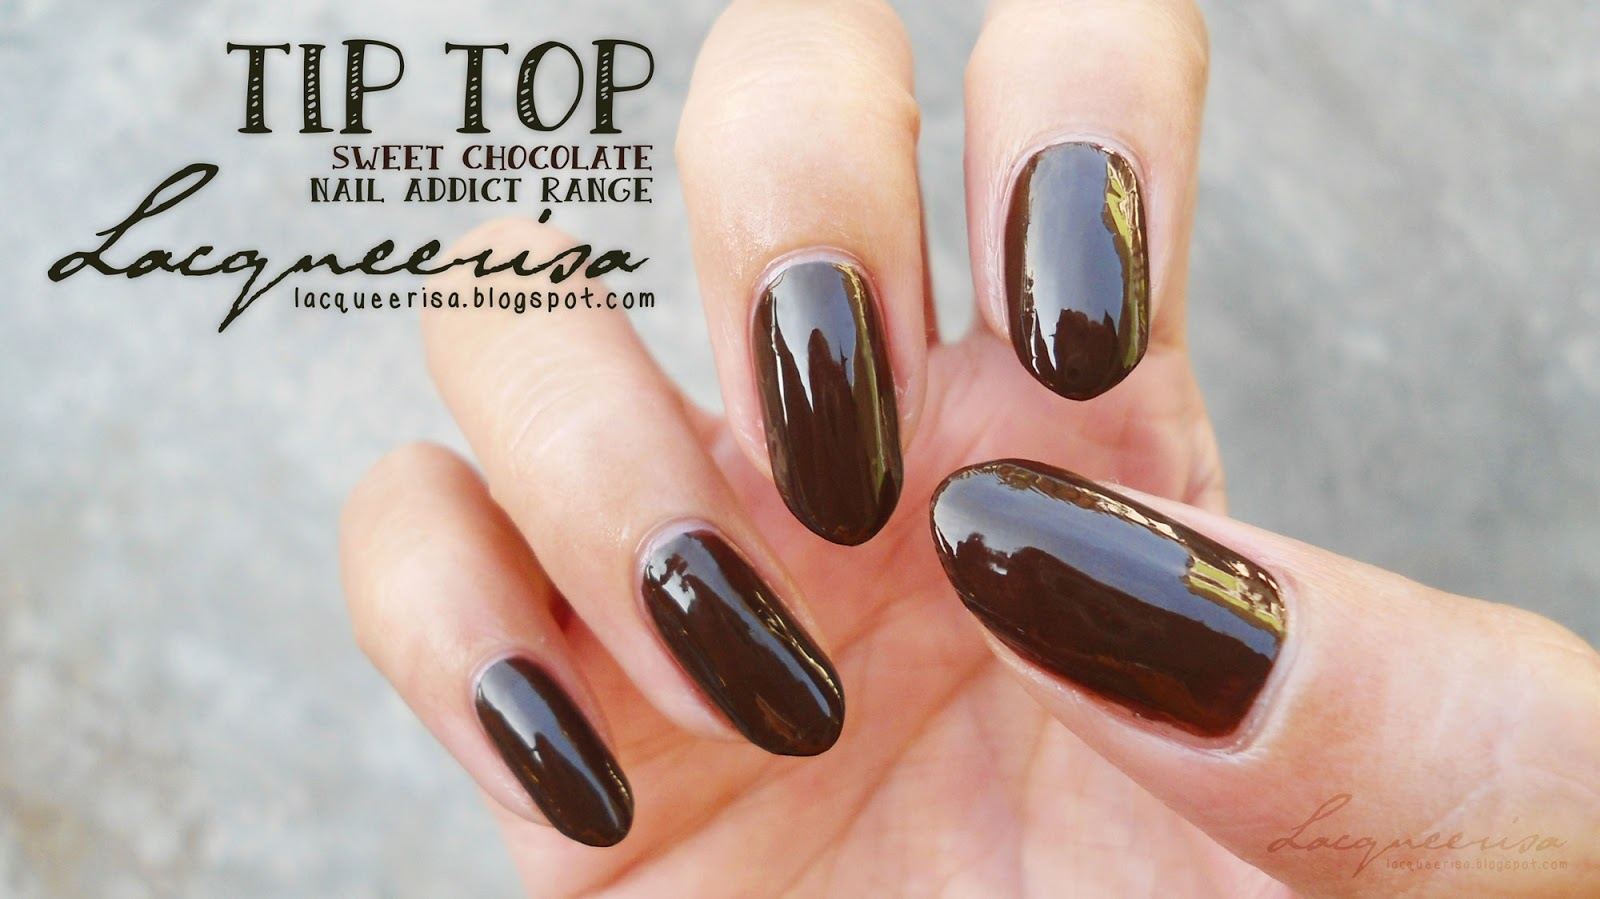 Lacqueerisa: Tip Top Nail Addict, Sweet Chocolate